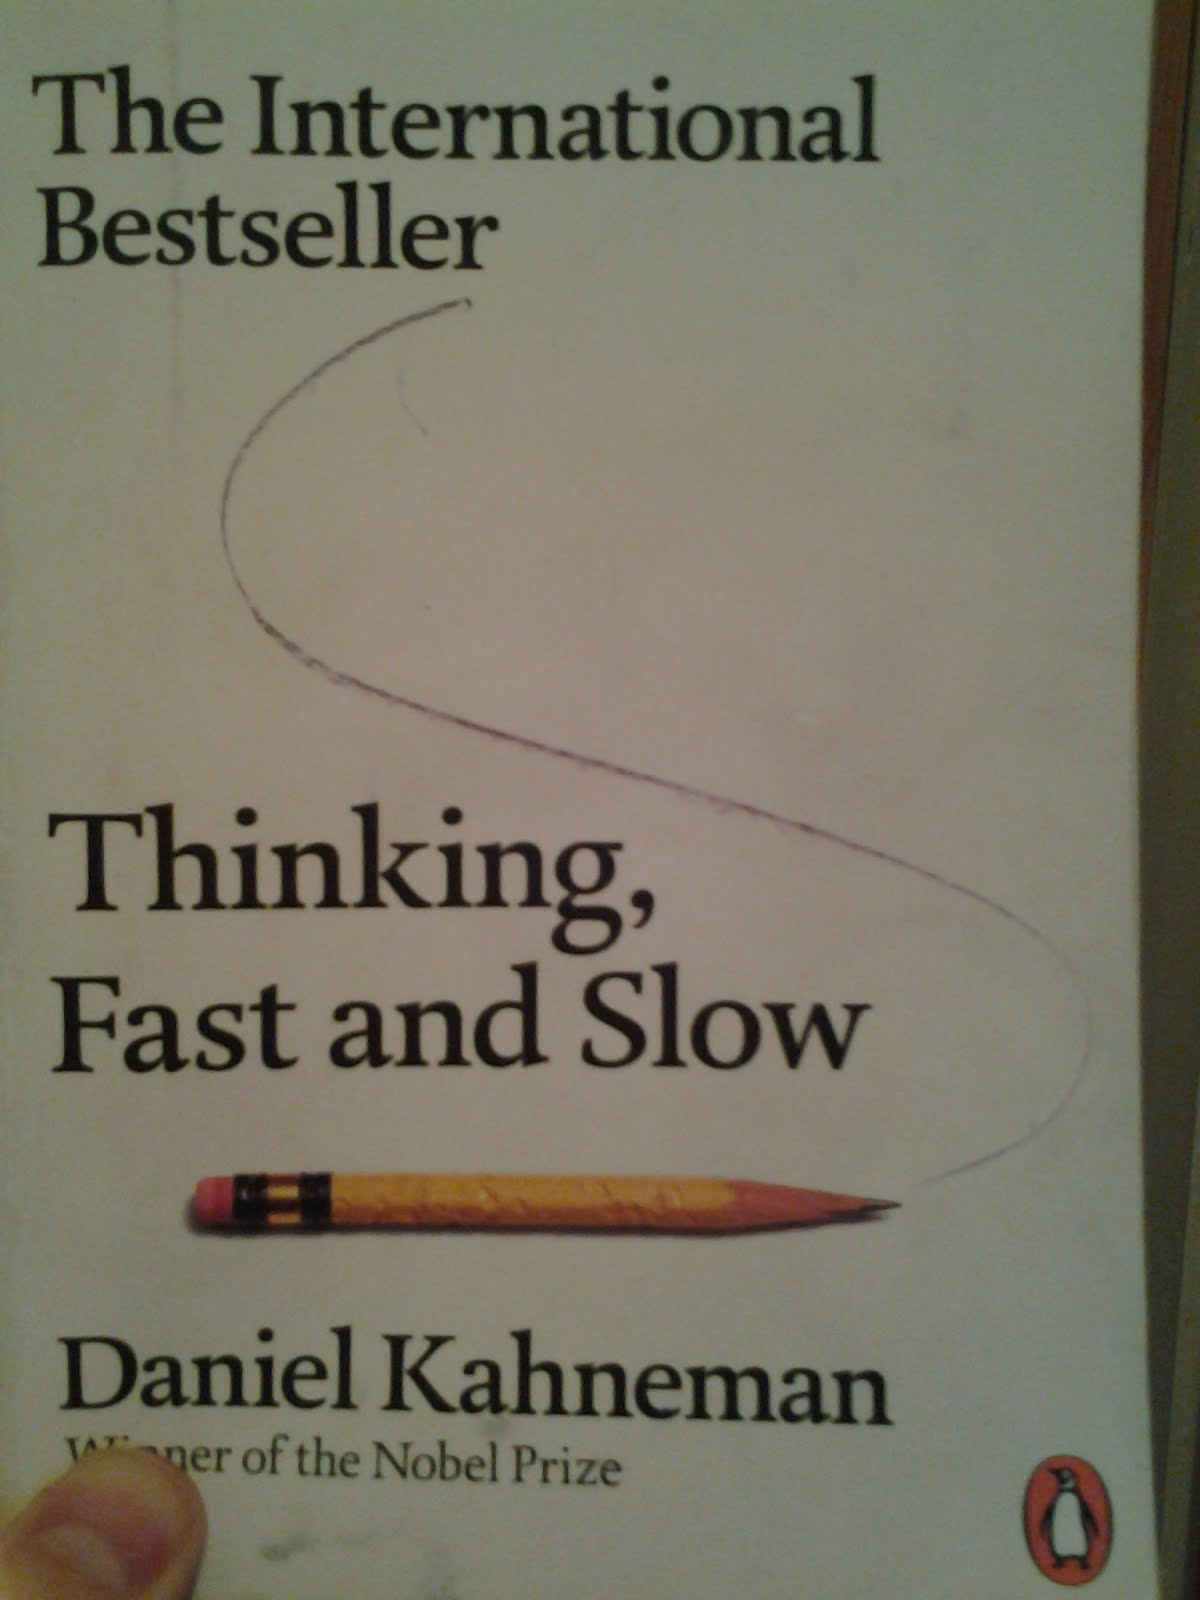 thinking fast and slow essay Thinking, fast and slow- book project thinking  more about thinking fast and slow by daniel kahneman essay slow food movement 719 words | 3 pages.